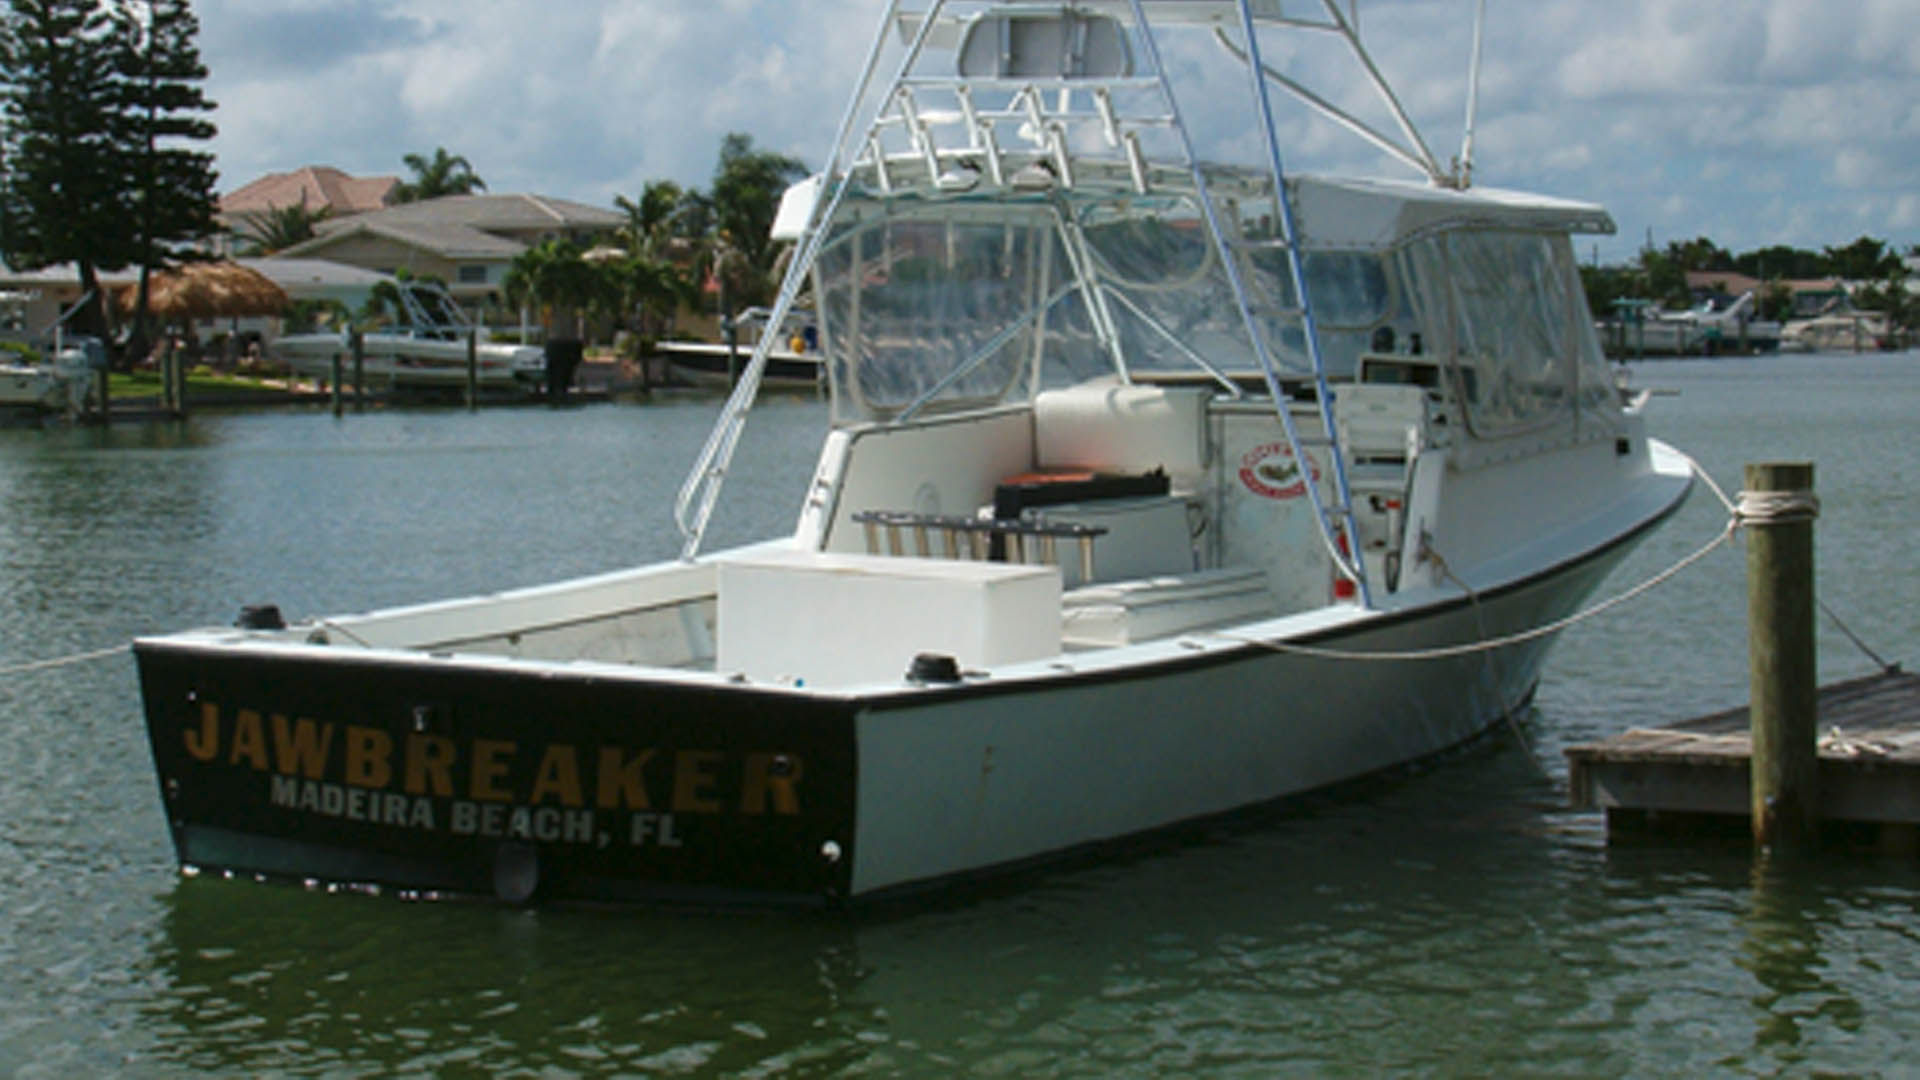 The Jawbreaker Fishing Boat in St. Petersburg, FL.